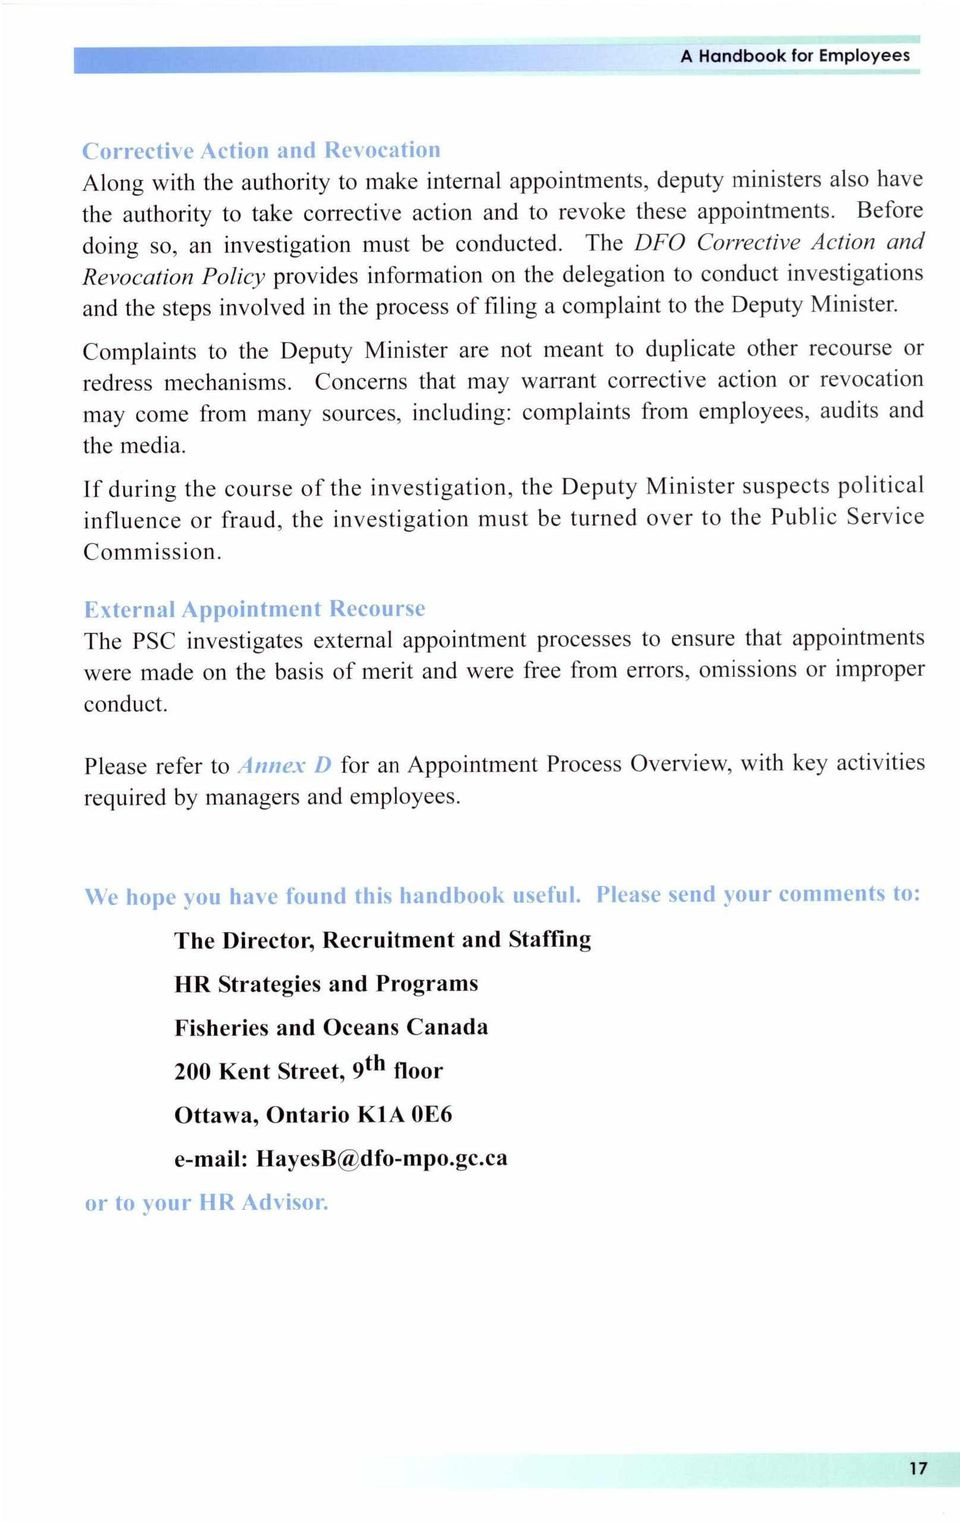 The DFO Corrective Action and Revocation Policy provides information on the delegation to conduct investigations and the steps involved in the process of filing a complaint to the Deputy Minister.